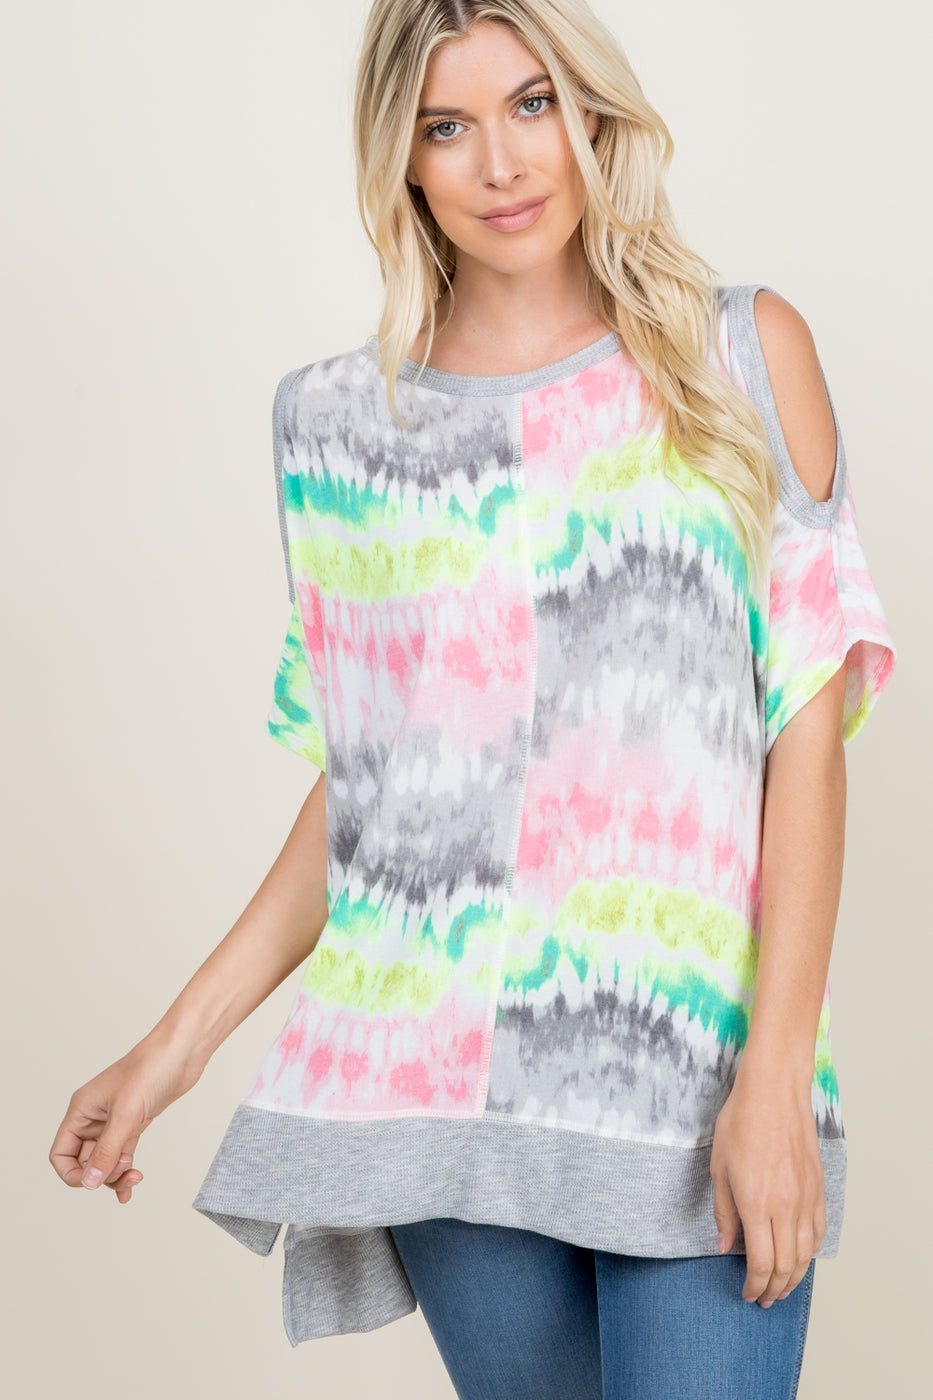 Daydream Believer Tie Dyed Cold Shoulder Tunic - Top - MIA Boutique LLC